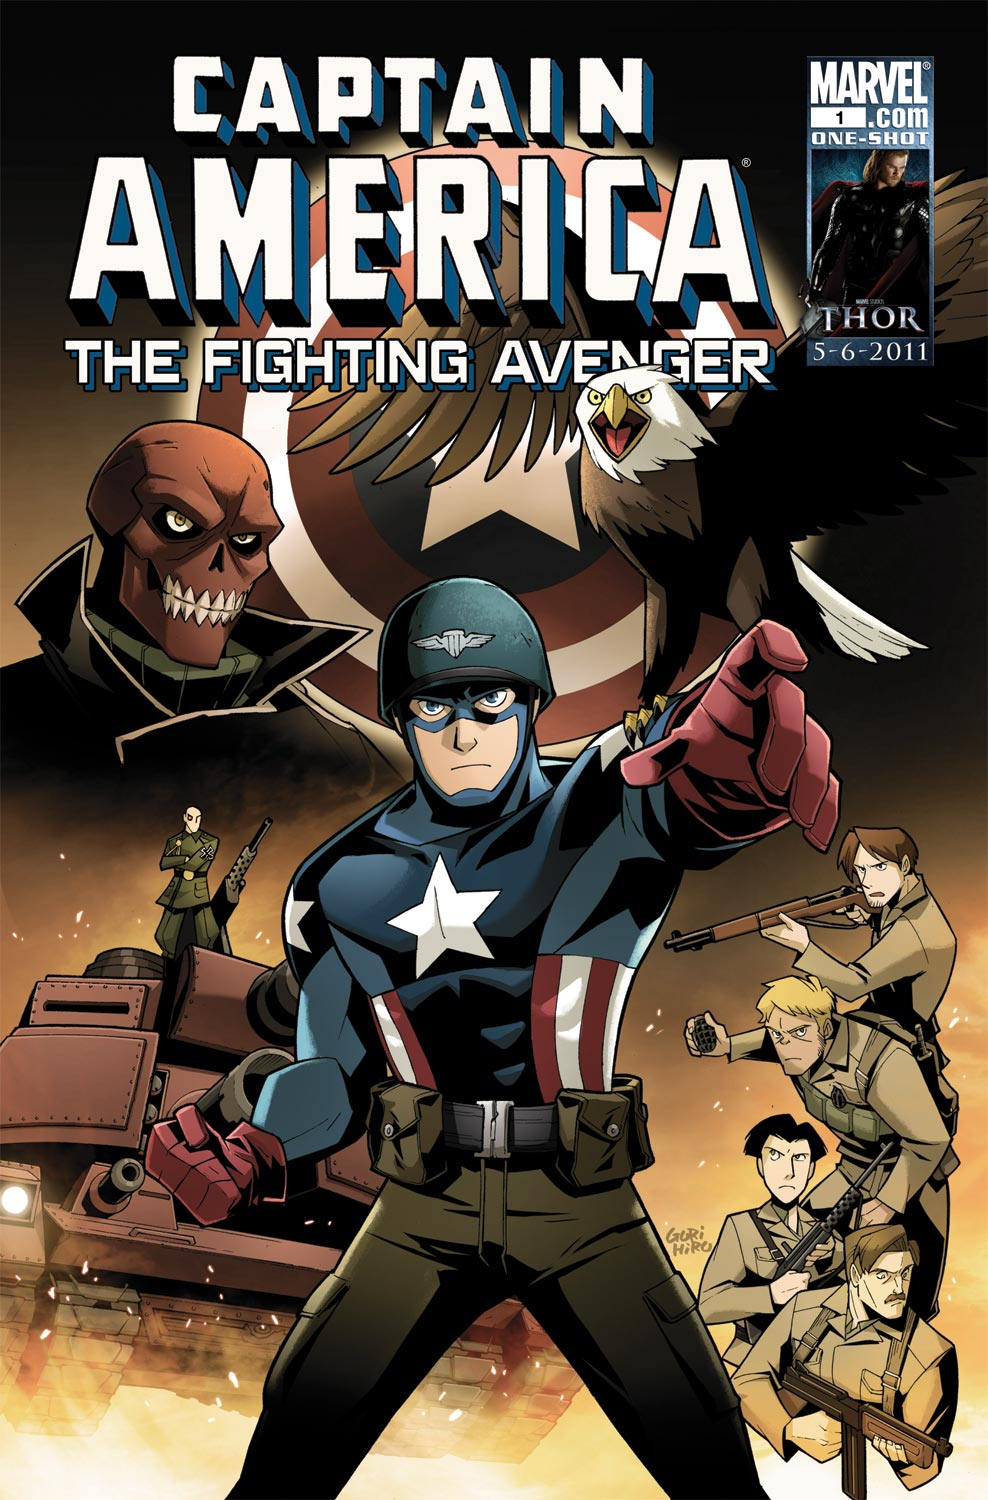 Captain America: The Fighting Avenger (2010) #1